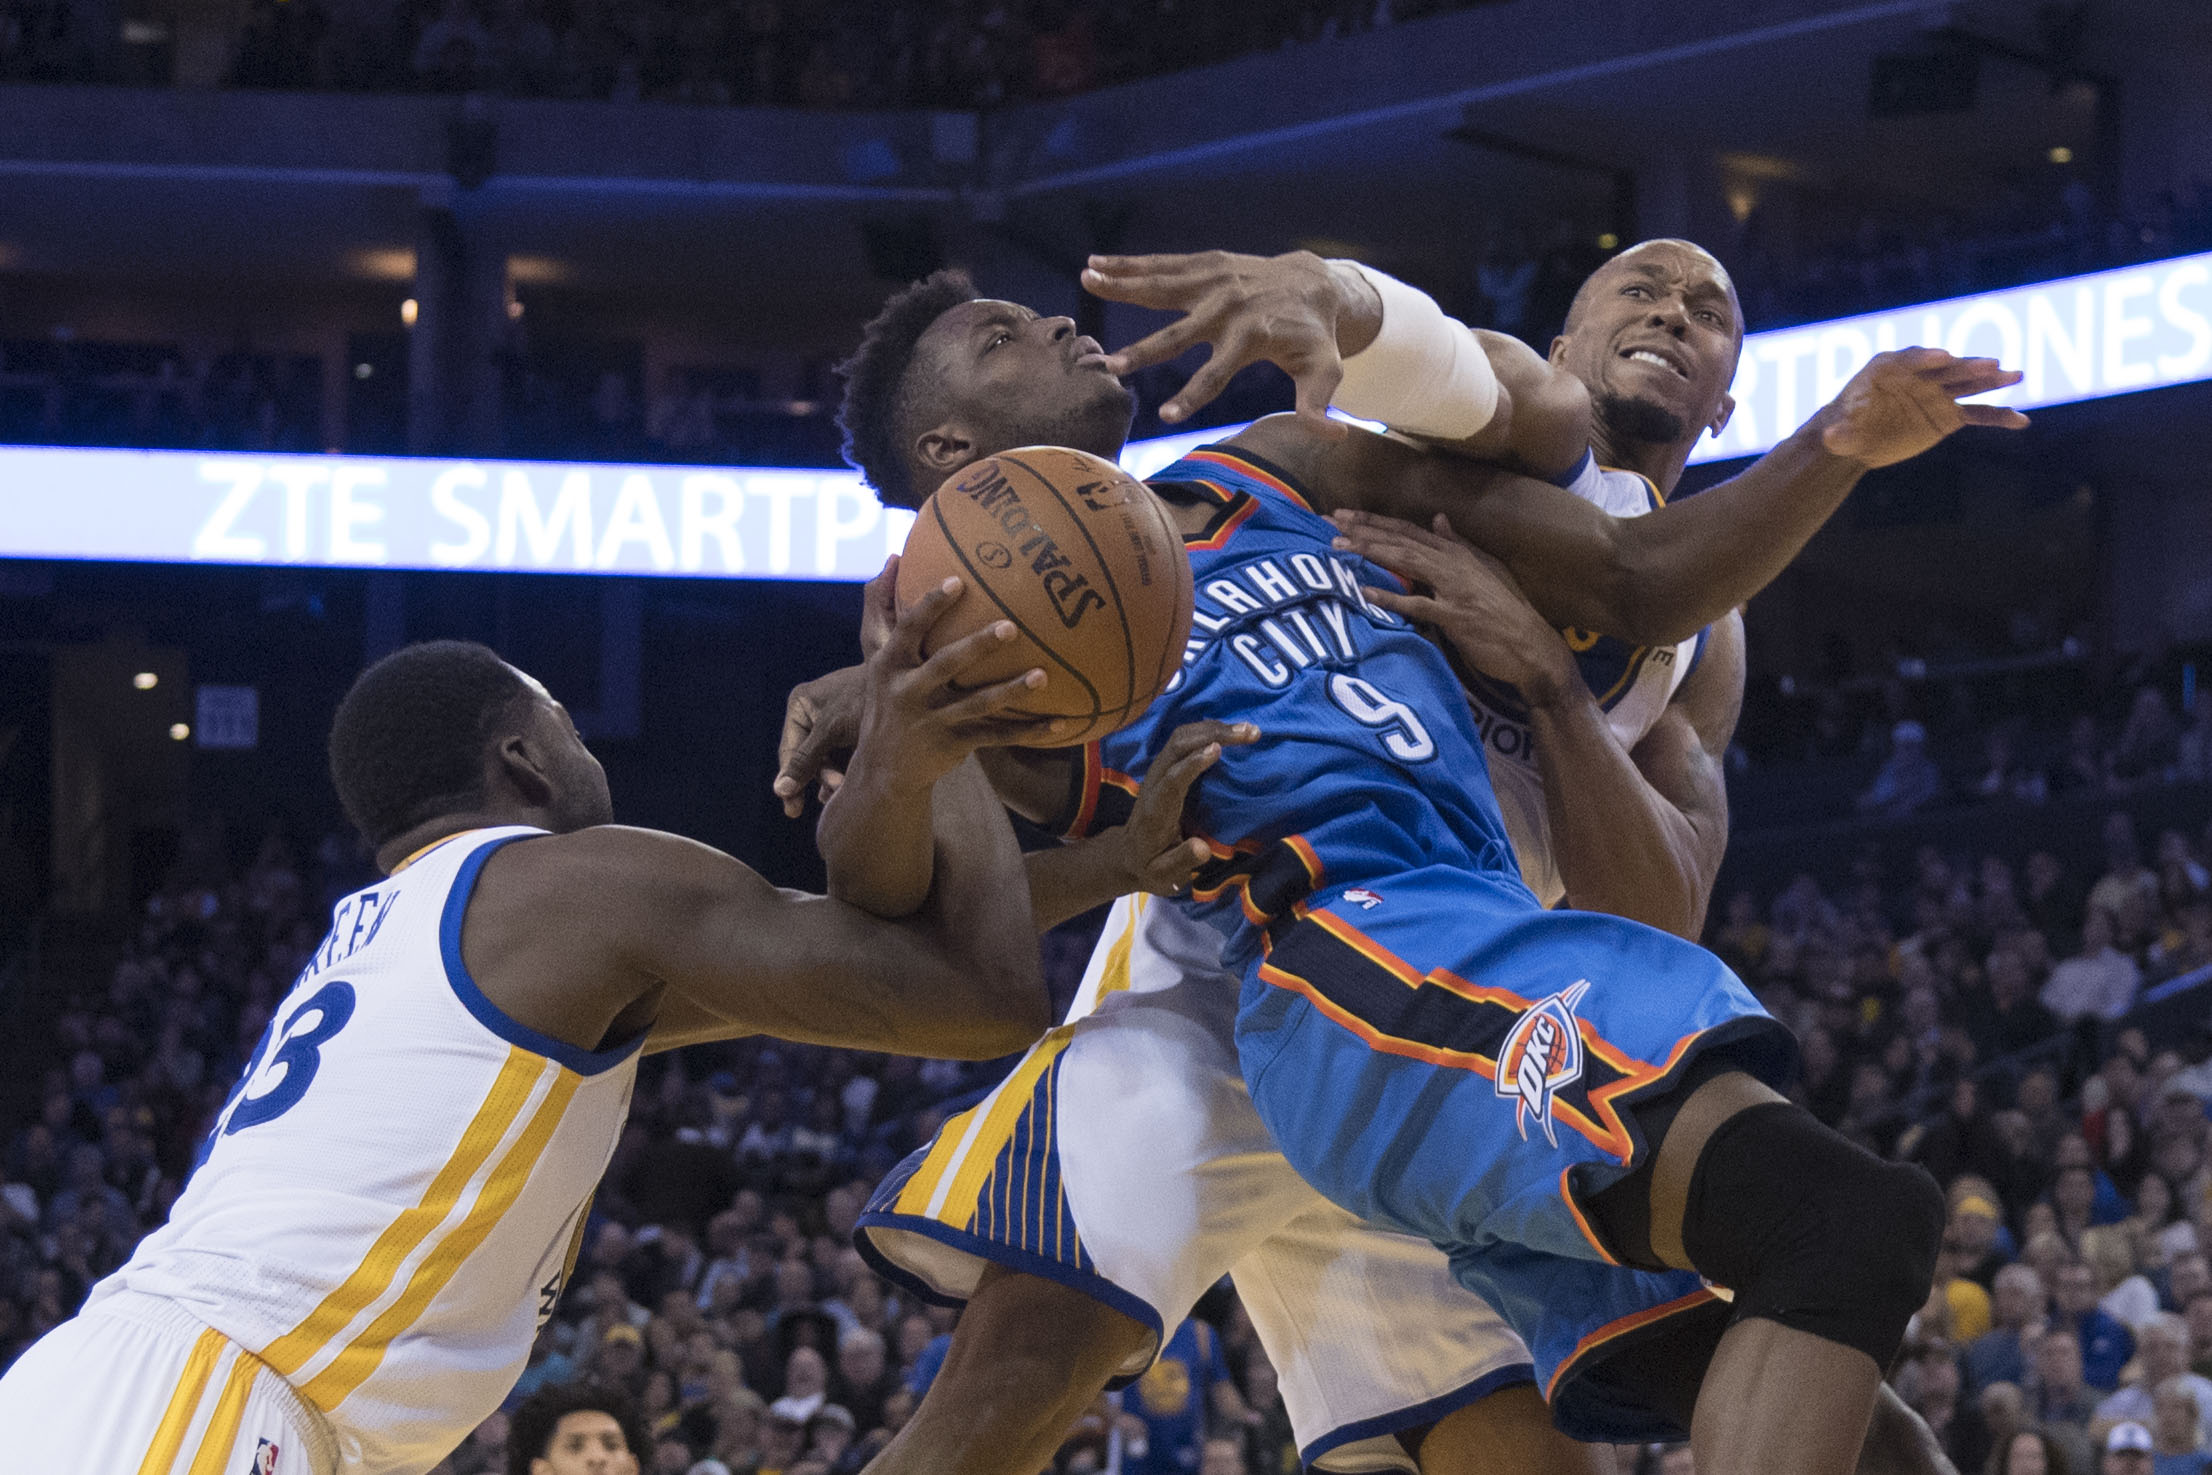 January 18, 2017; Oakland, CA, USA; Oklahoma City Thunder forward Jerami Grant (9) is fouled by Golden State Warriors forward Draymond Green (23) during the fourth quarter at Oracle Arena. The Warriors defeated the Thunder 121-100. Mandatory Credit: Kyle Terada-USA TODAY Sports